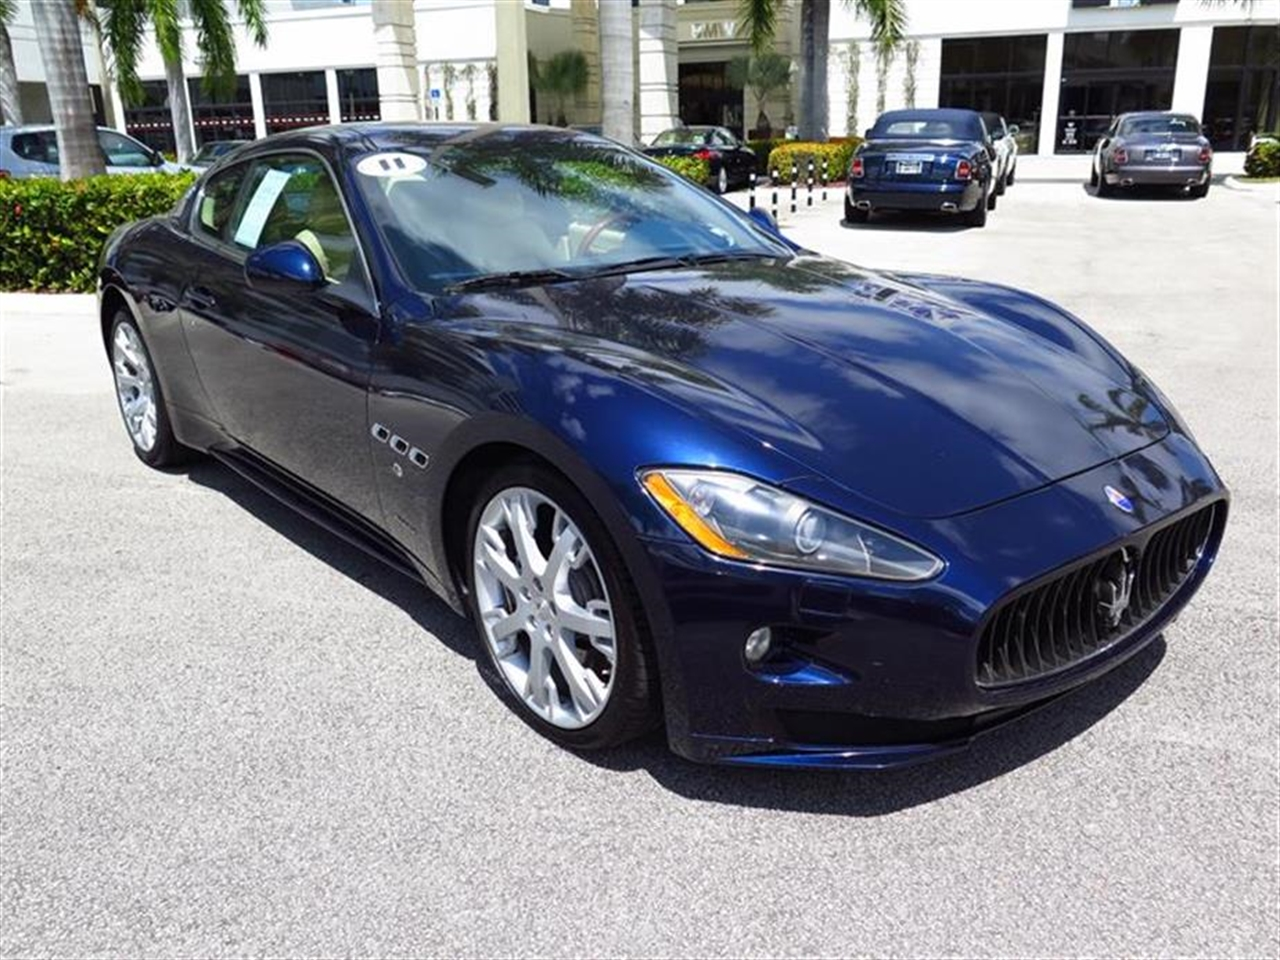 2011 MASERATI GRANTURISMO 2dr Cpe GranTurismo S 7026 miles 3-spoke black leather sports steering w